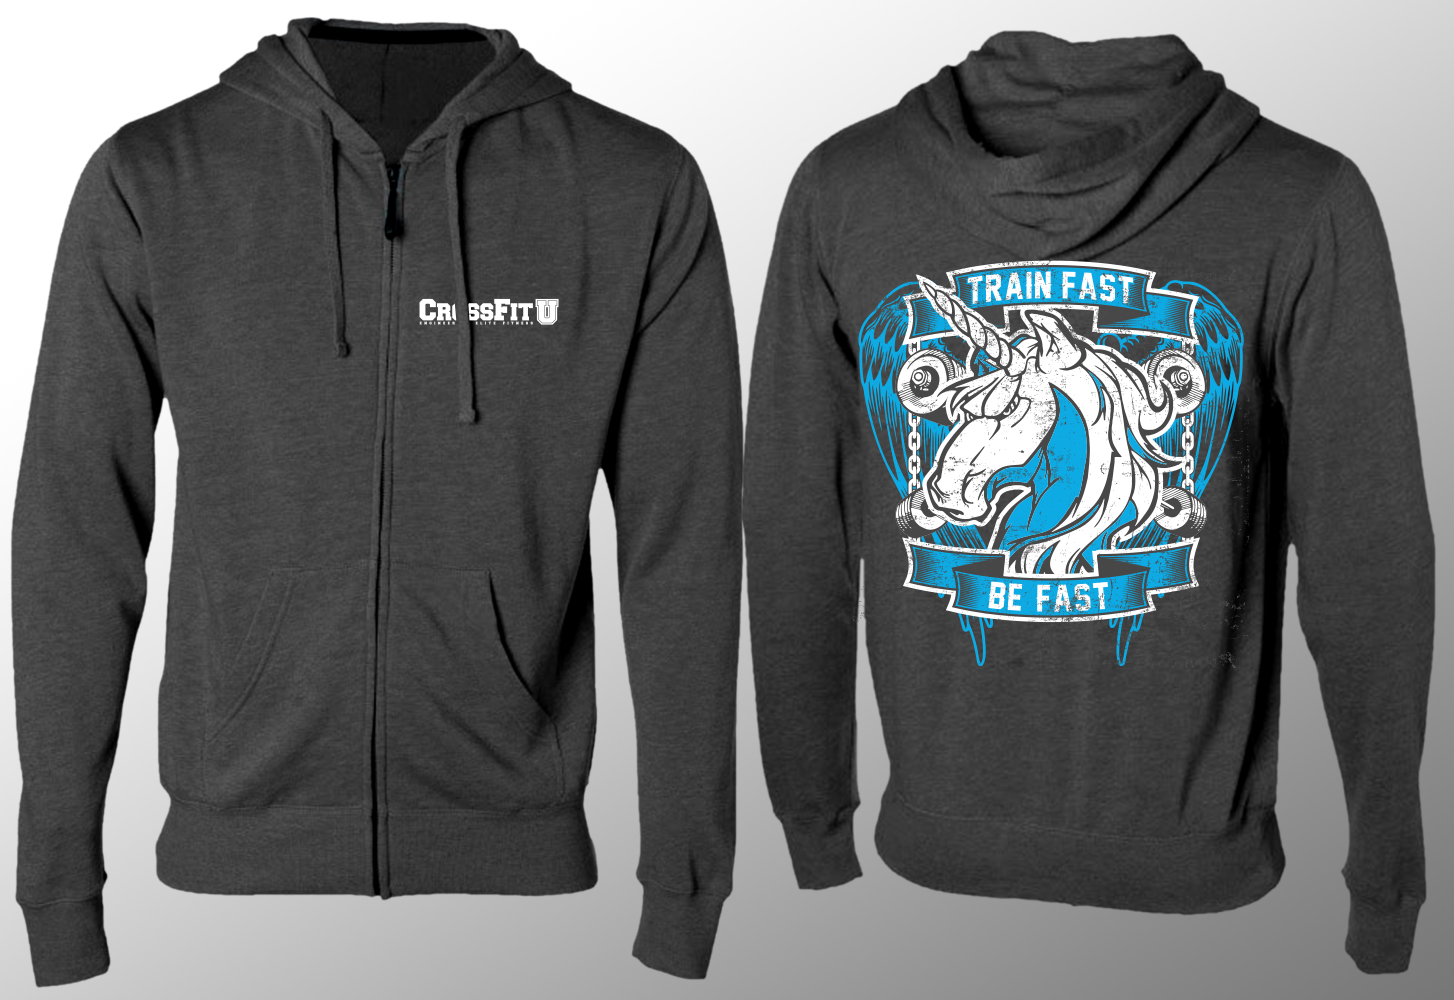 awesome hoodie designs crossfit gym needs an awesome hoodie design